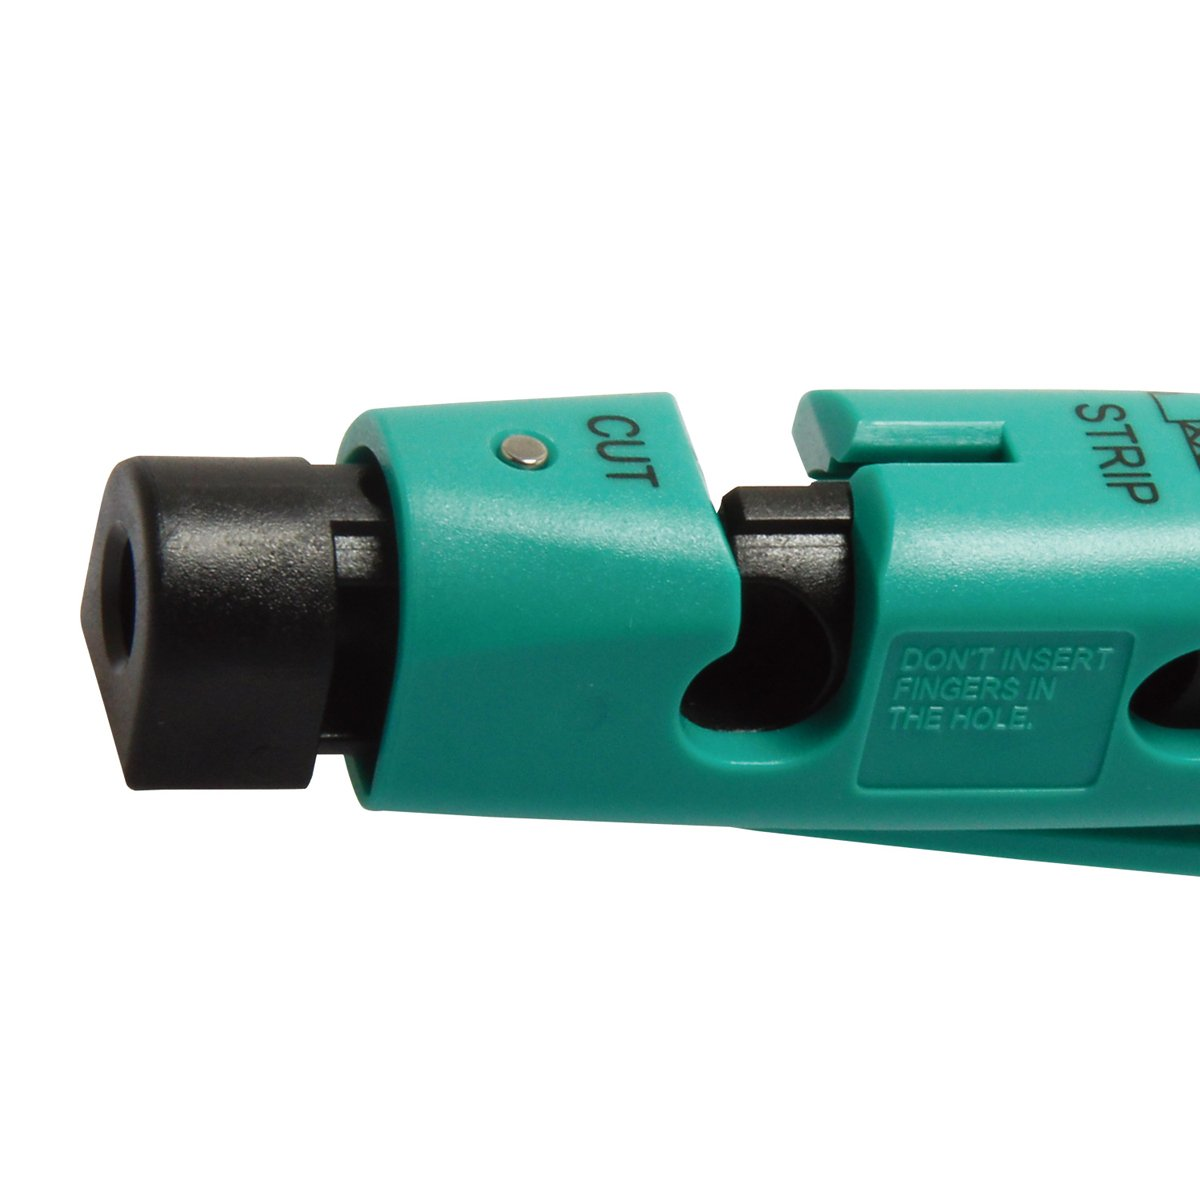 CP-507 Coaxial Cable Stripper/Cutter for RG-59, RG-6 Coaxial Cable Wire Stripper Tool 111mm Length by Tpmall (Image #3)